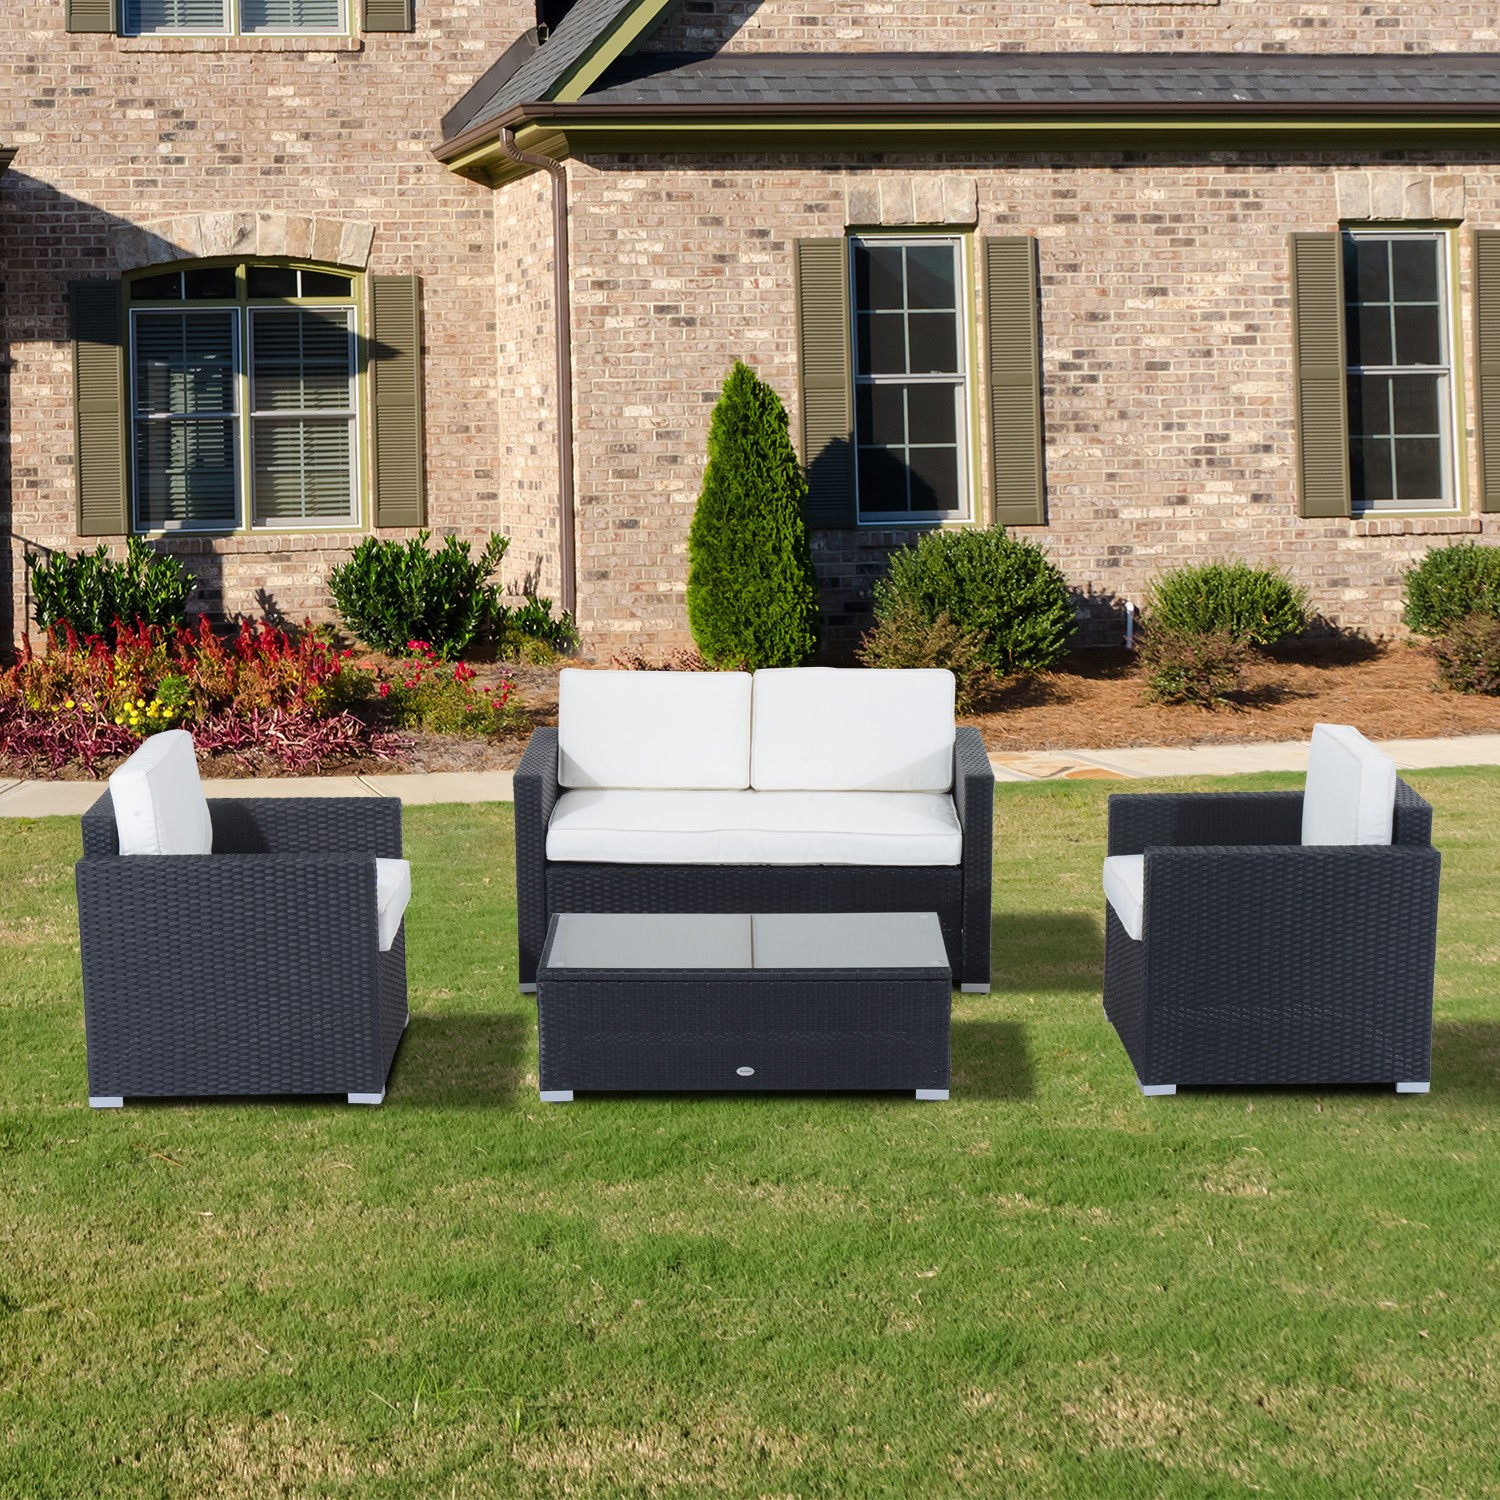 Best ideas about Outsunny Patio Furniture . Save or Pin Outsunny 4pc Outdoor Rattan Sofa Patio Furniture Set Now.